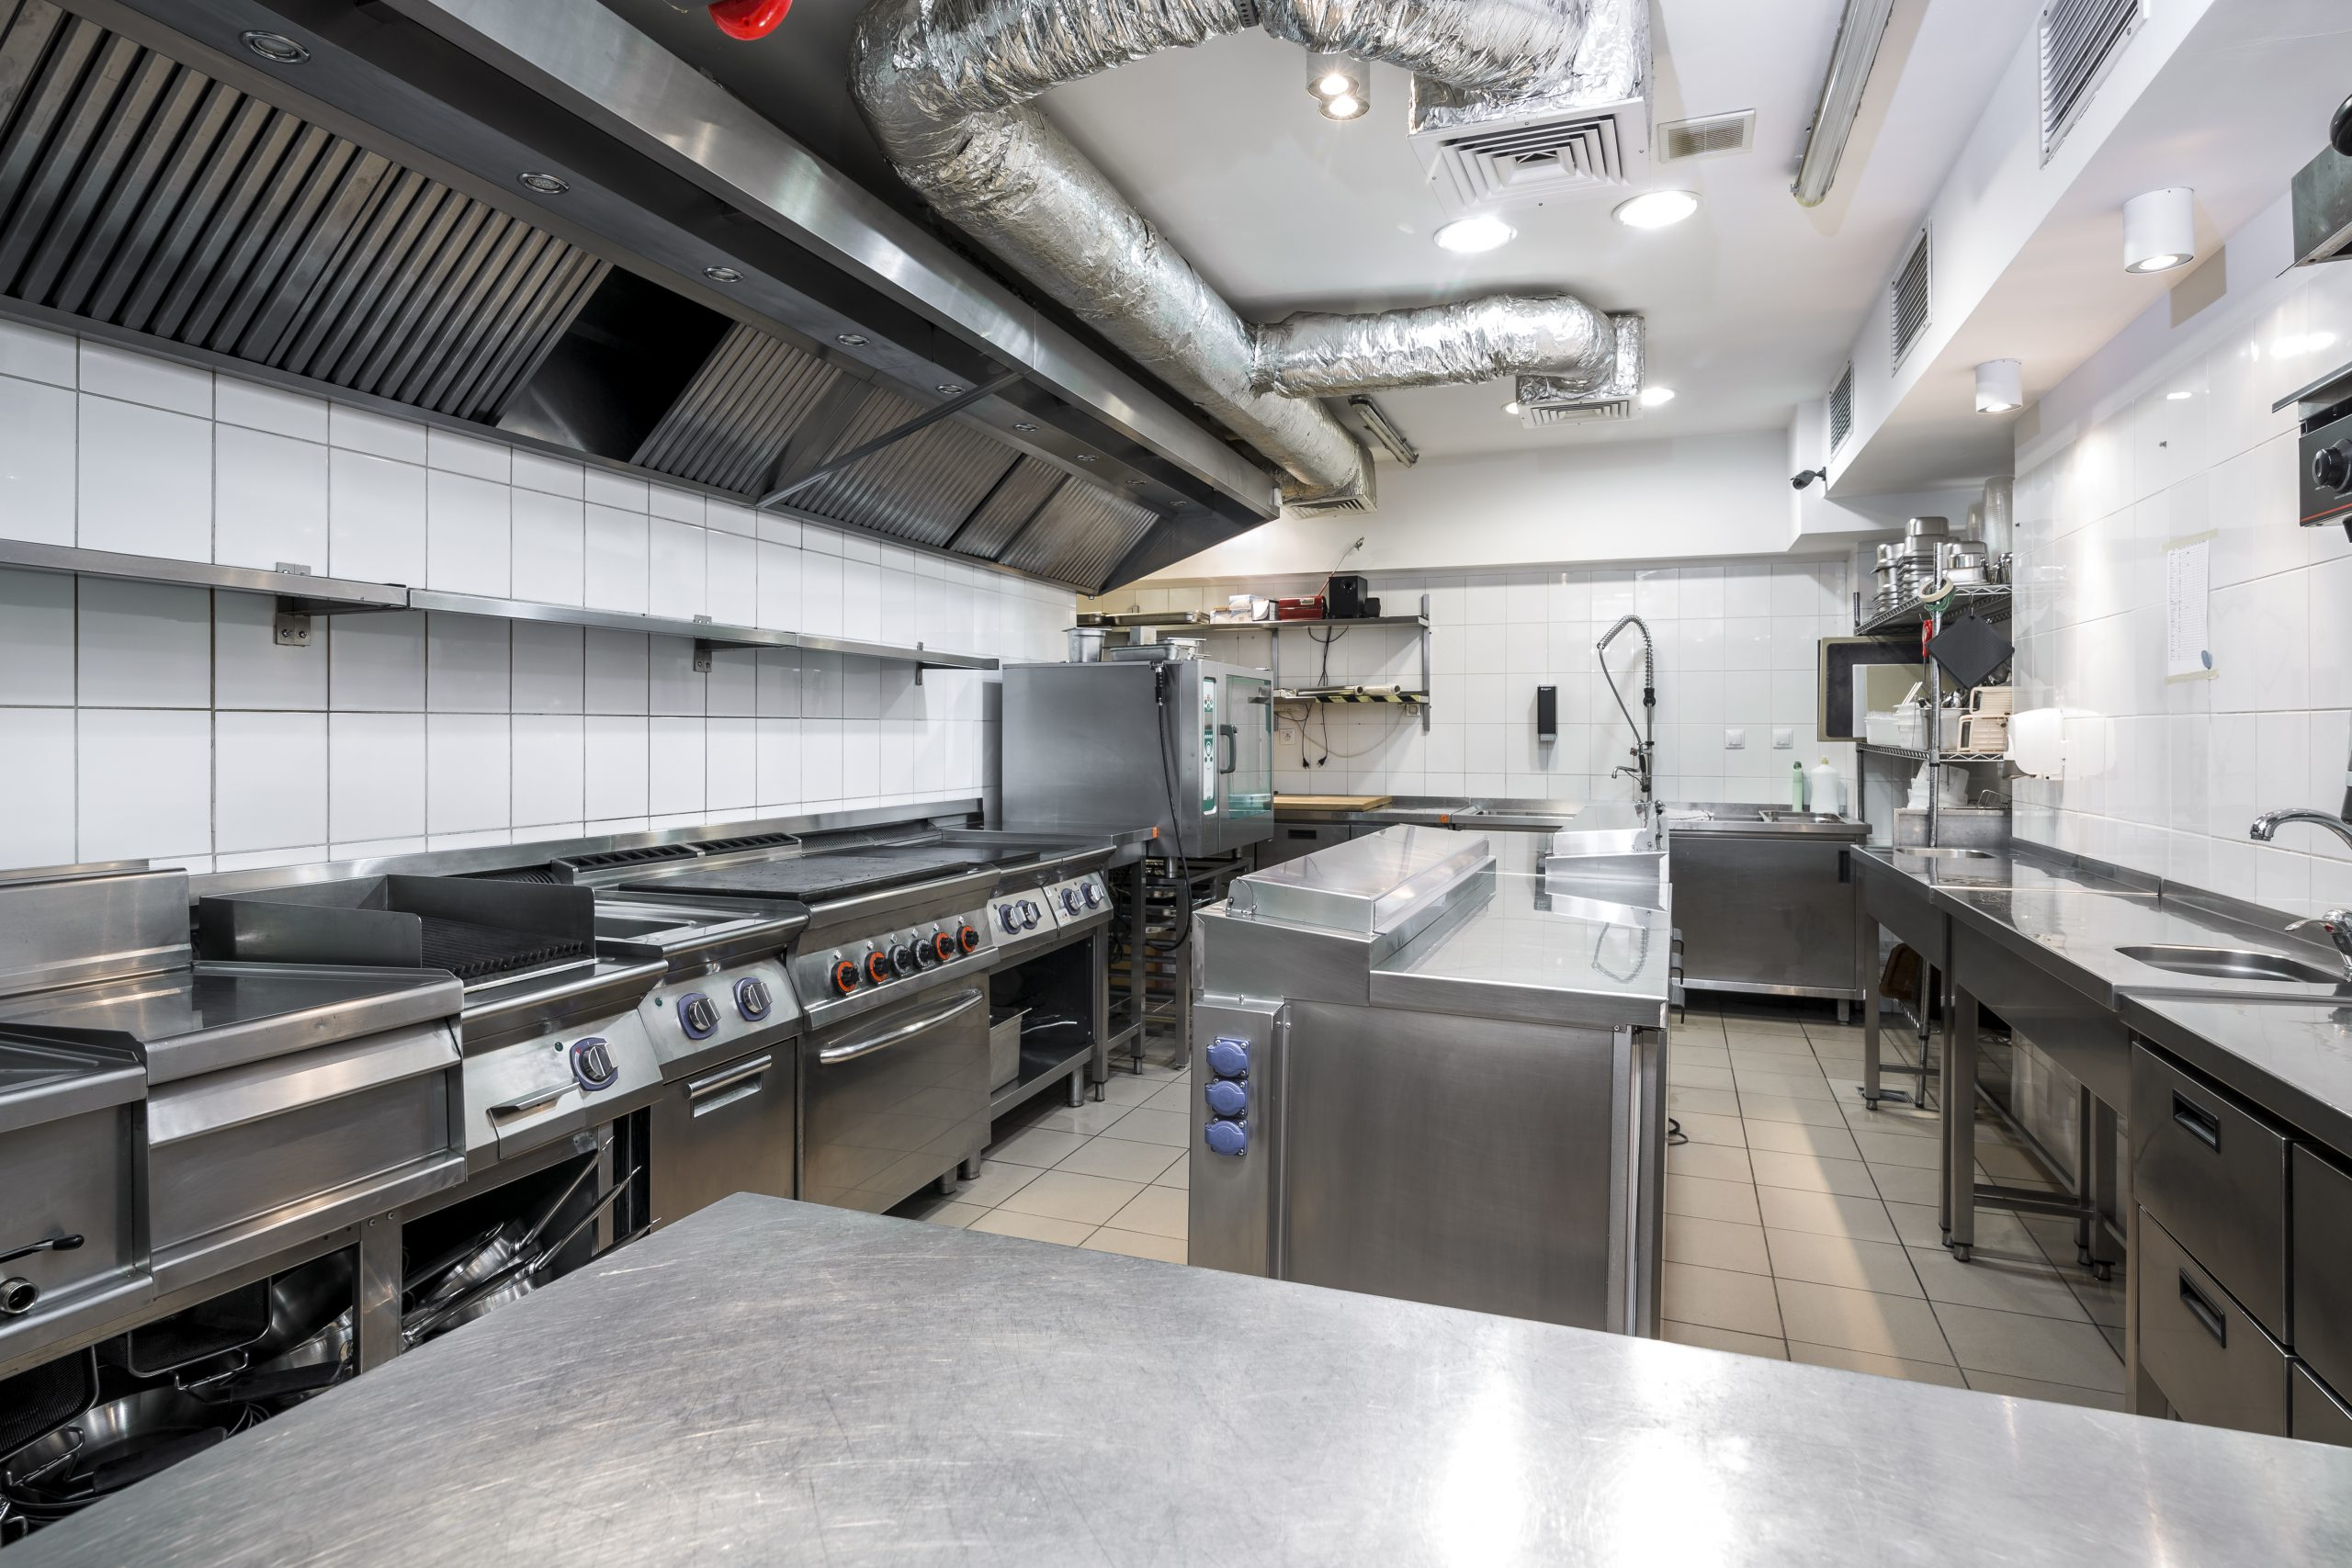 commercial kitchen equipment service